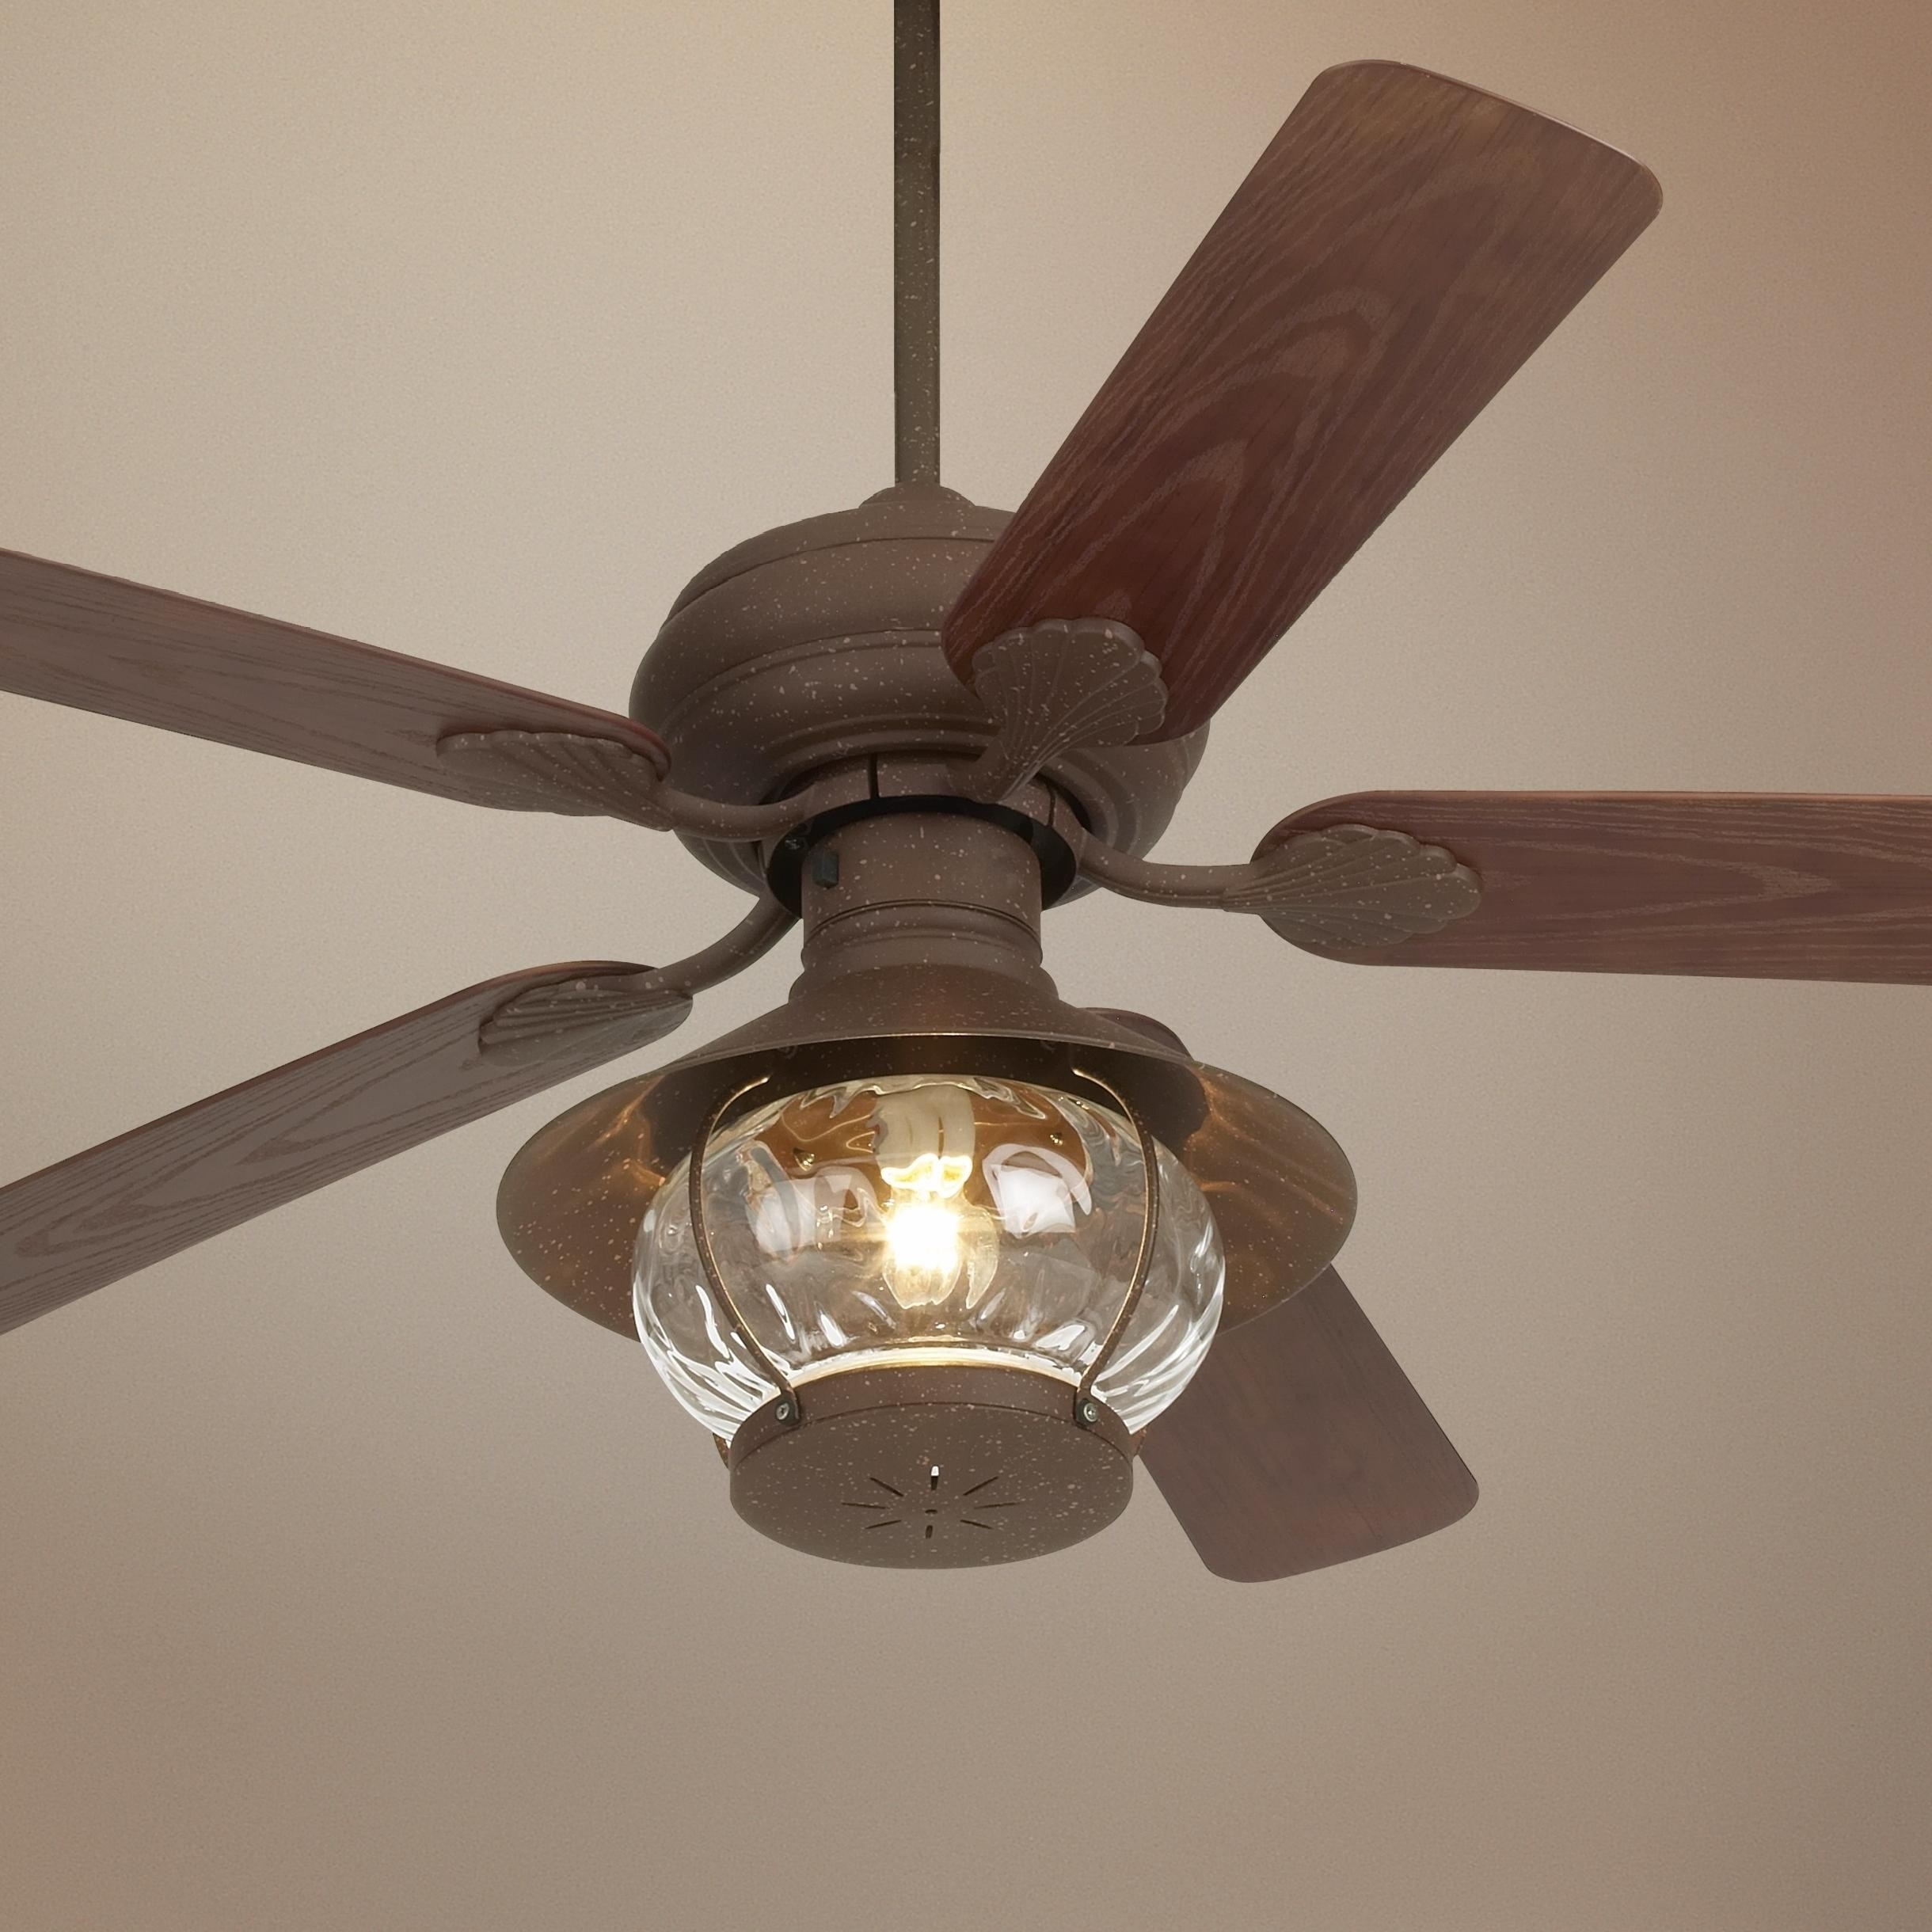 Trendy Outdoor Ceiling Fans With Lantern Light With Regard To Frantic Light Rustic Ceiling Light Shades Rustic Ceiling Lights (View 16 of 20)